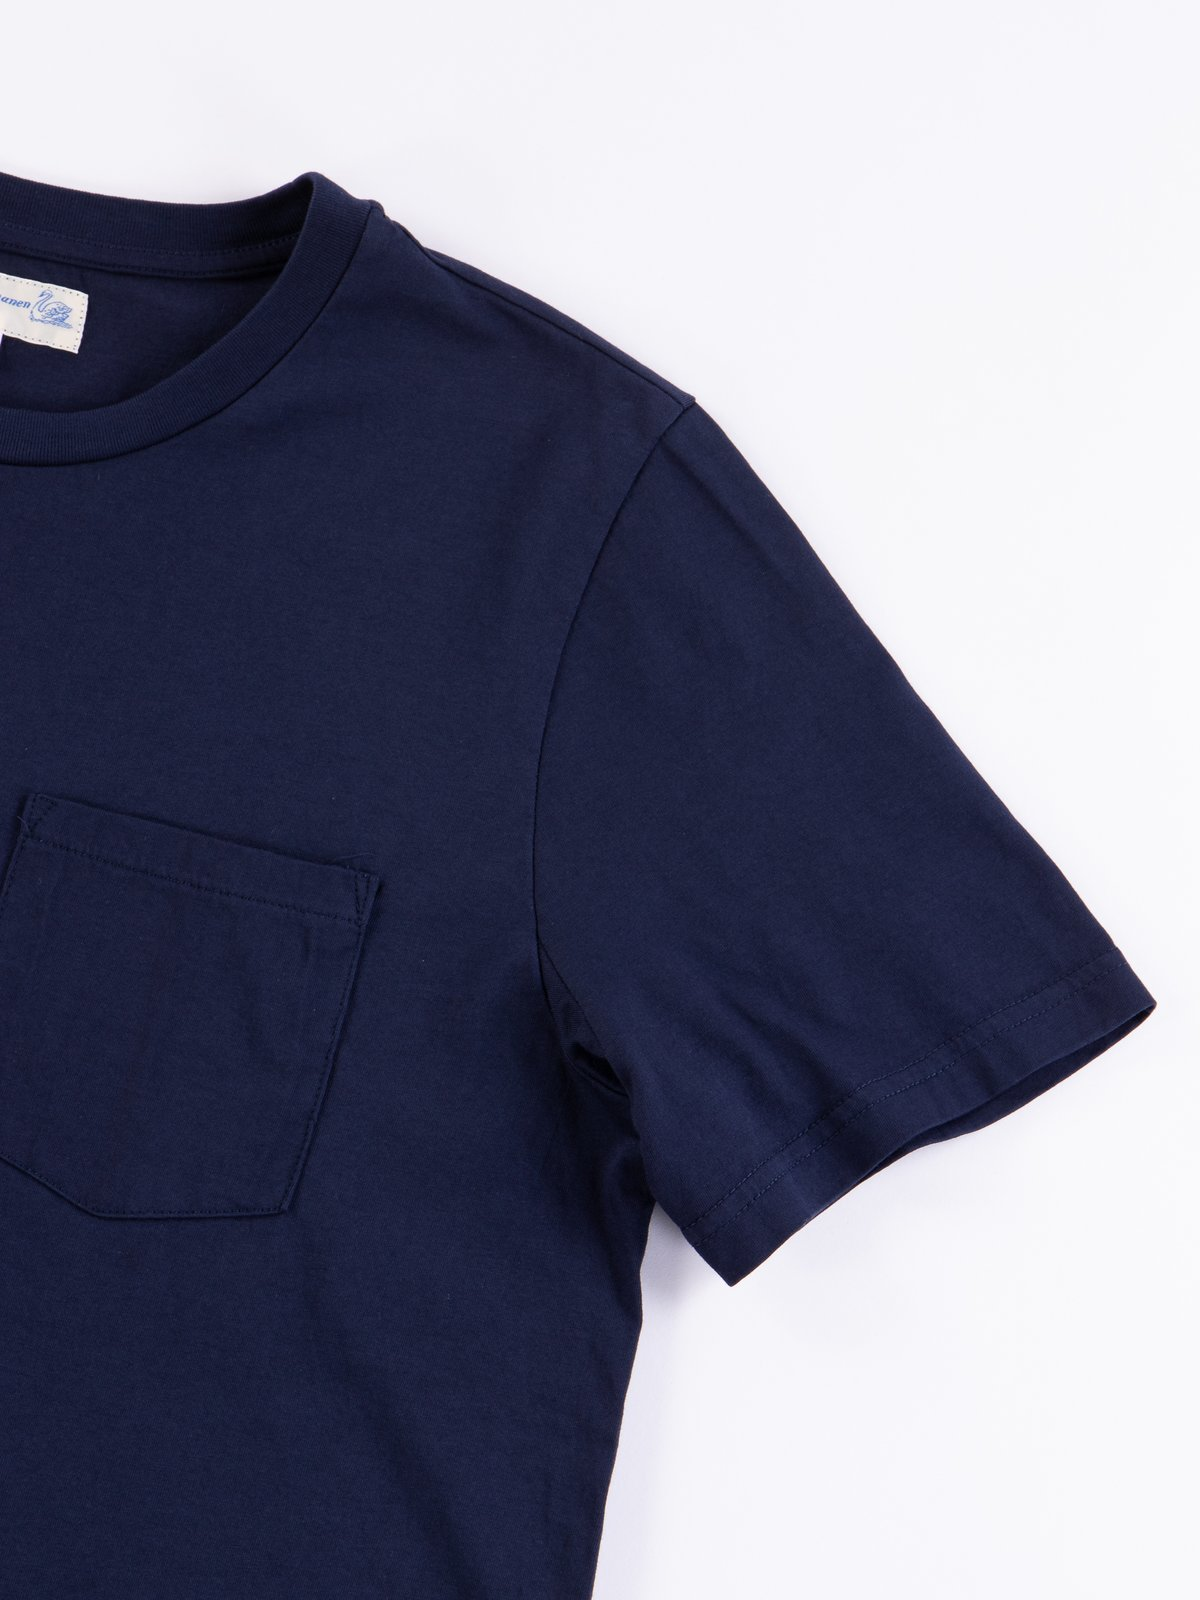 Deep Blue Good Basics CTP01 Pocket Crew Neck Tee - Image 3